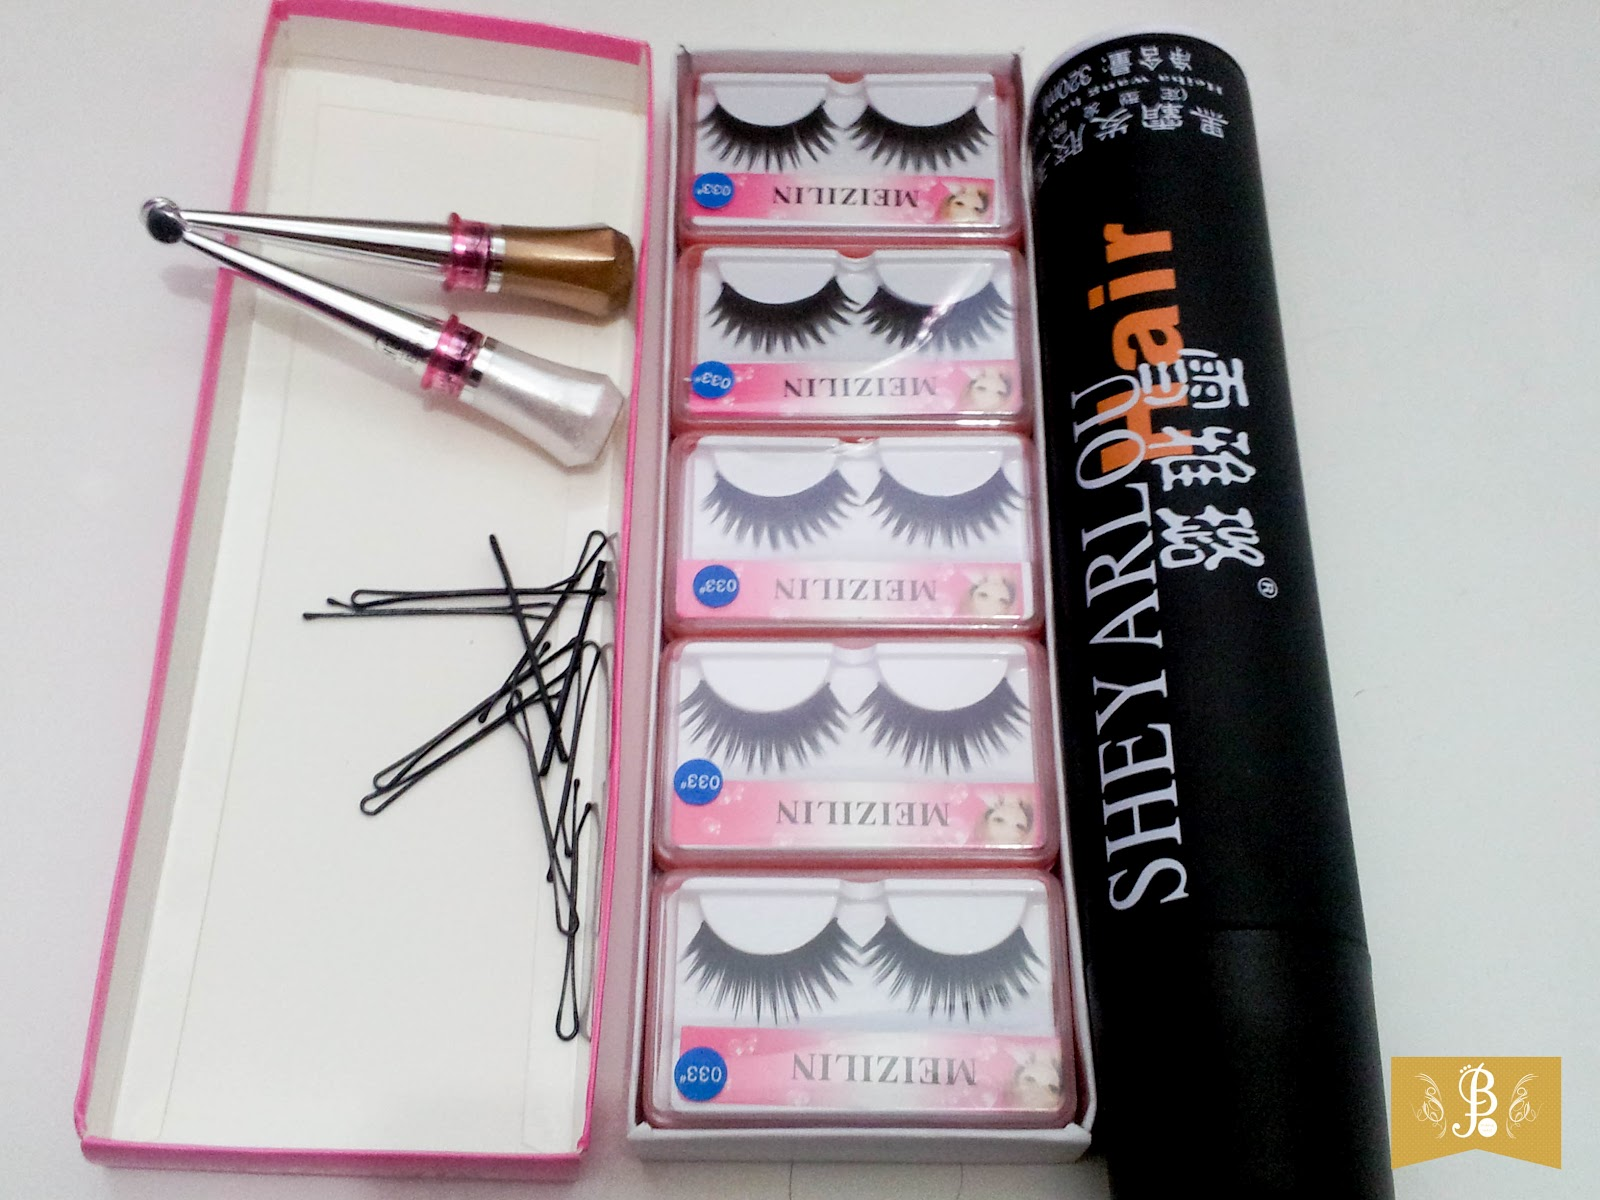 Nail art supplies divisoria – Great photo blog about manicure 2017